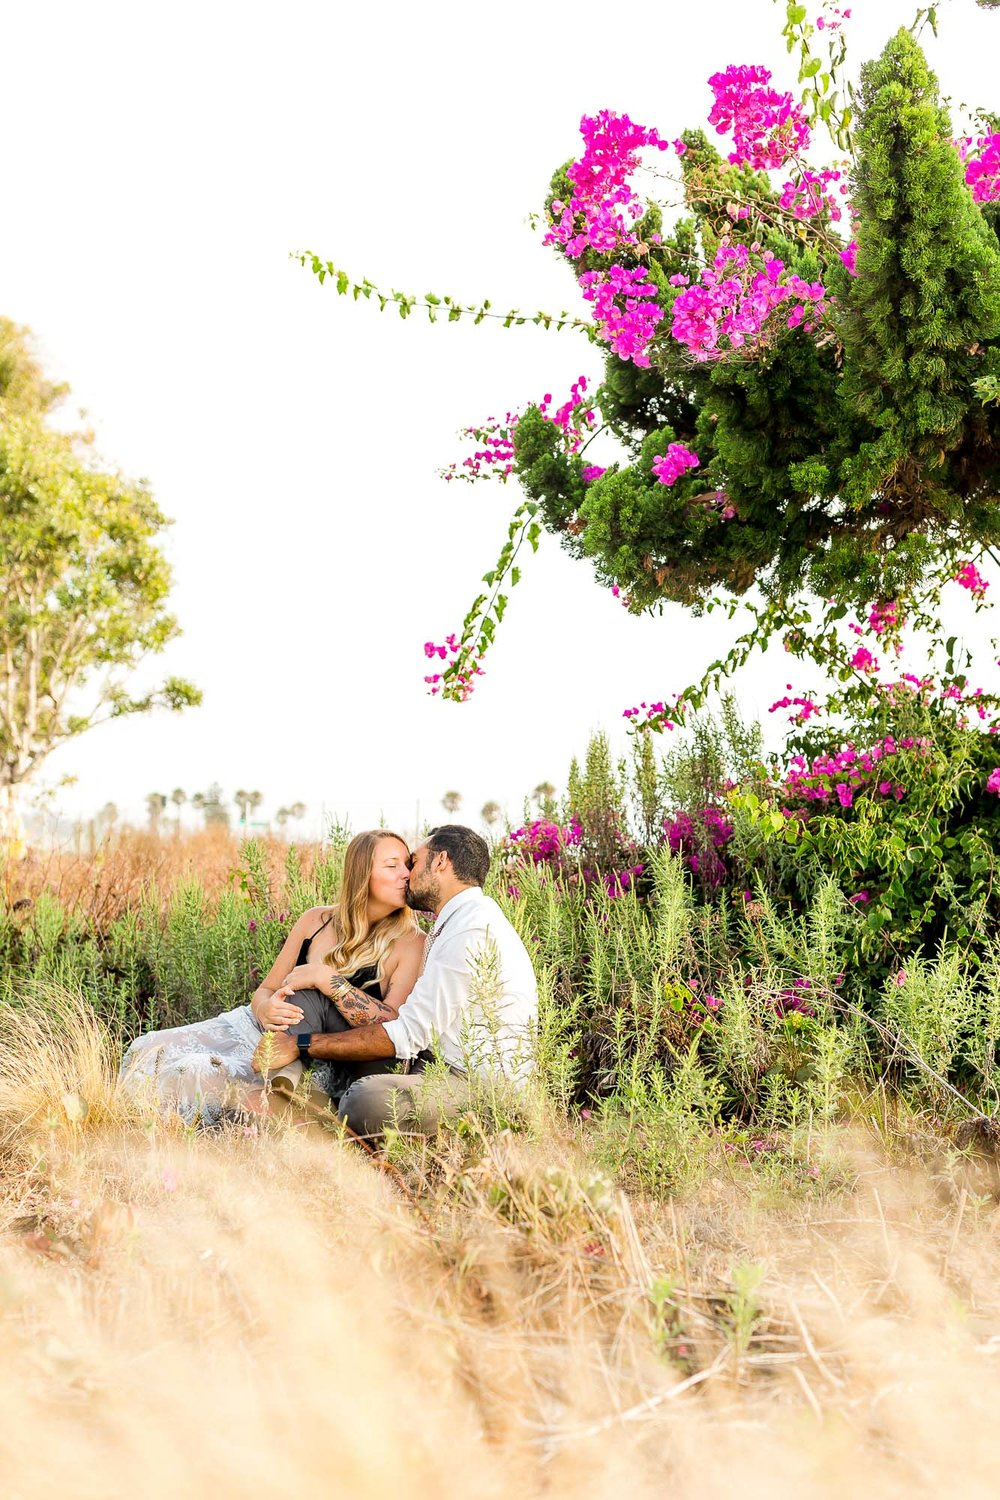 Justine_Puneet_Cardiff_Engagement_Session_059.jpg